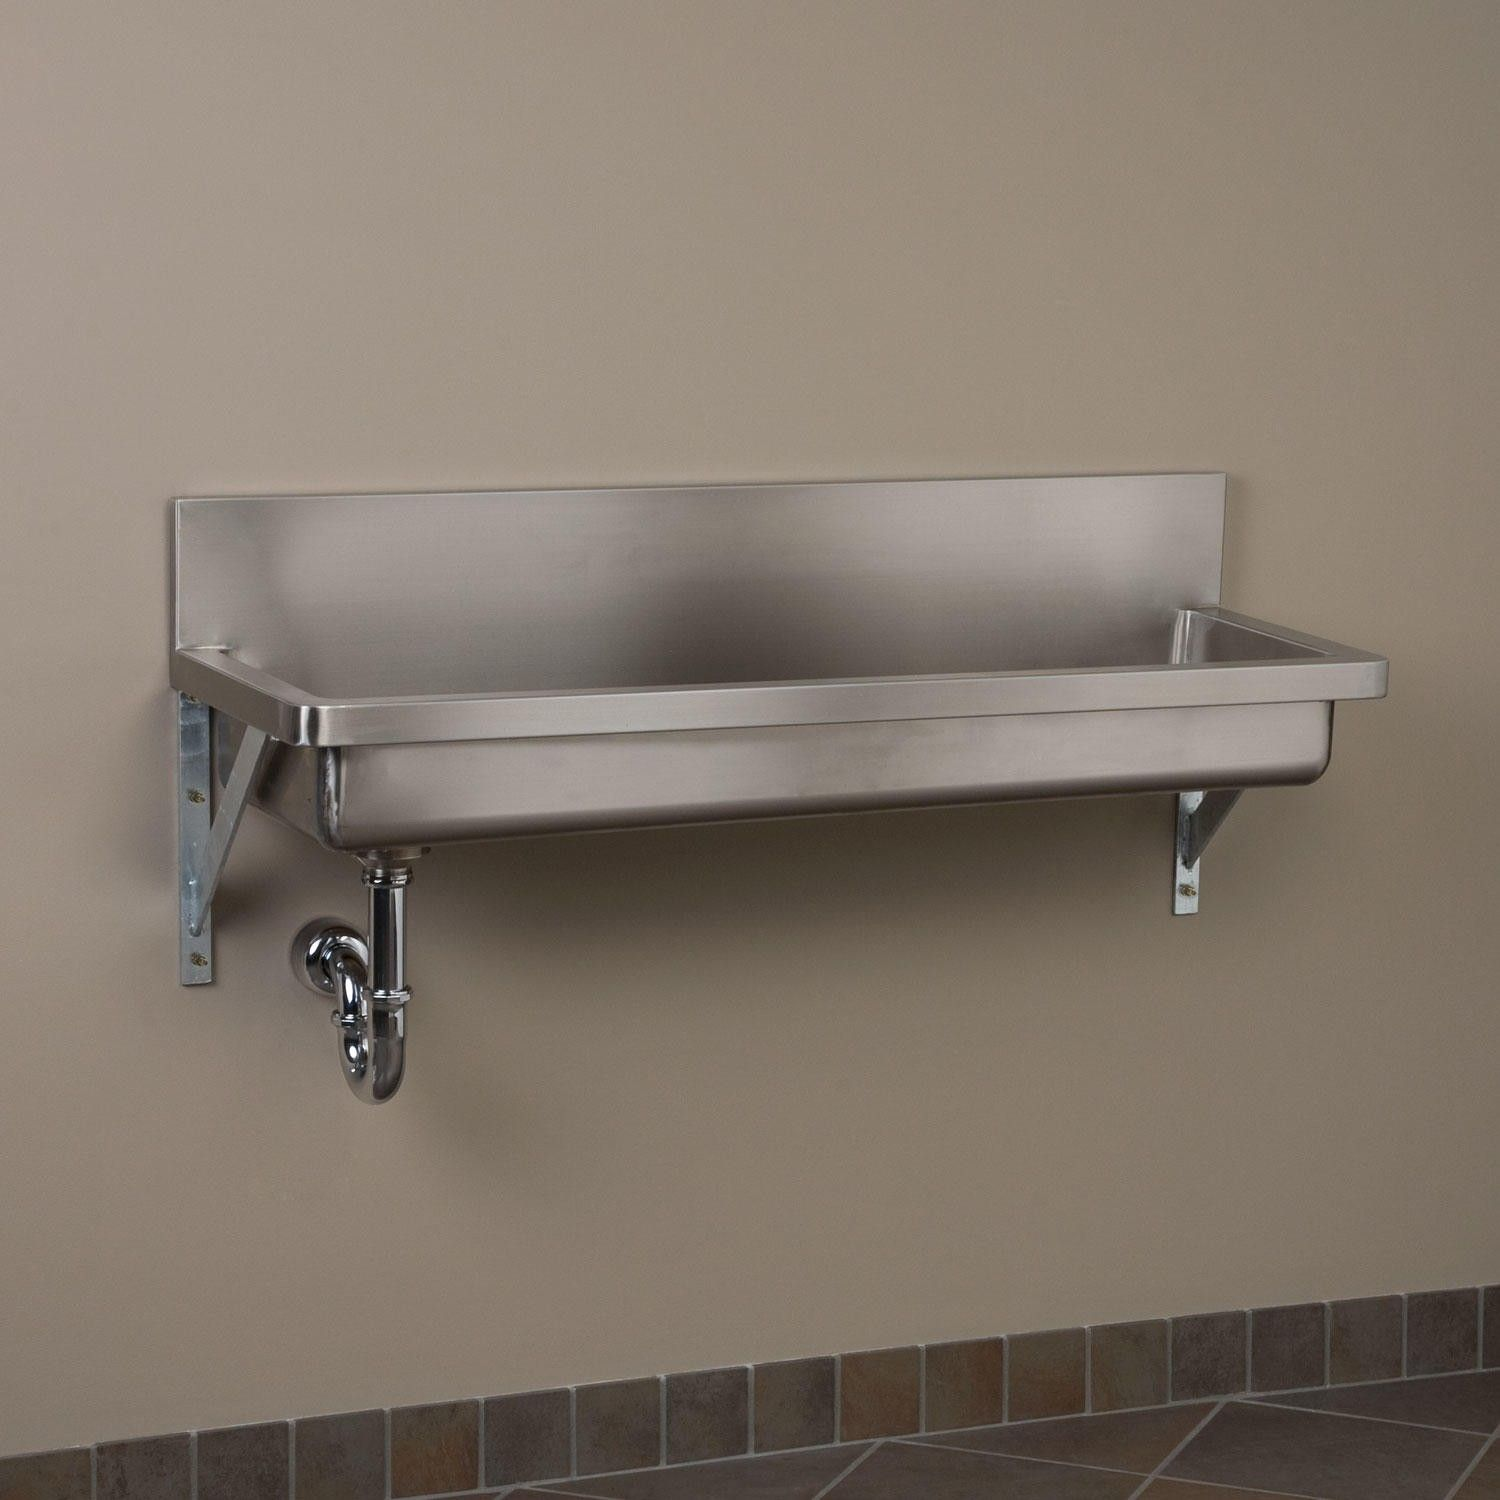 Kitchen sink stainless steel double drainer single bowl in vic ebay - Stainless Steel Wall Mount Commercial Sink